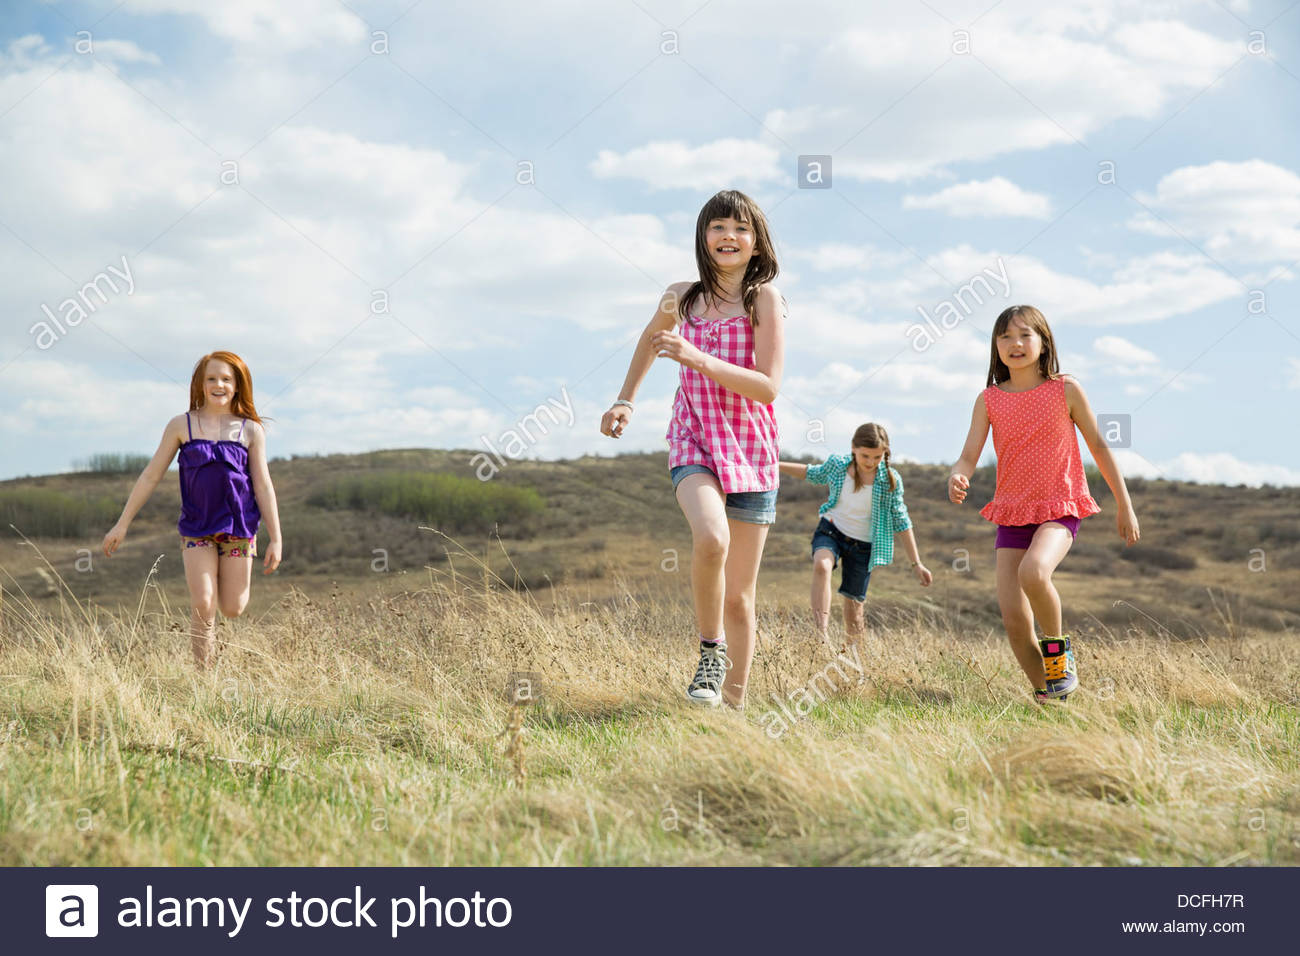 Young girls running through field - Stock Image